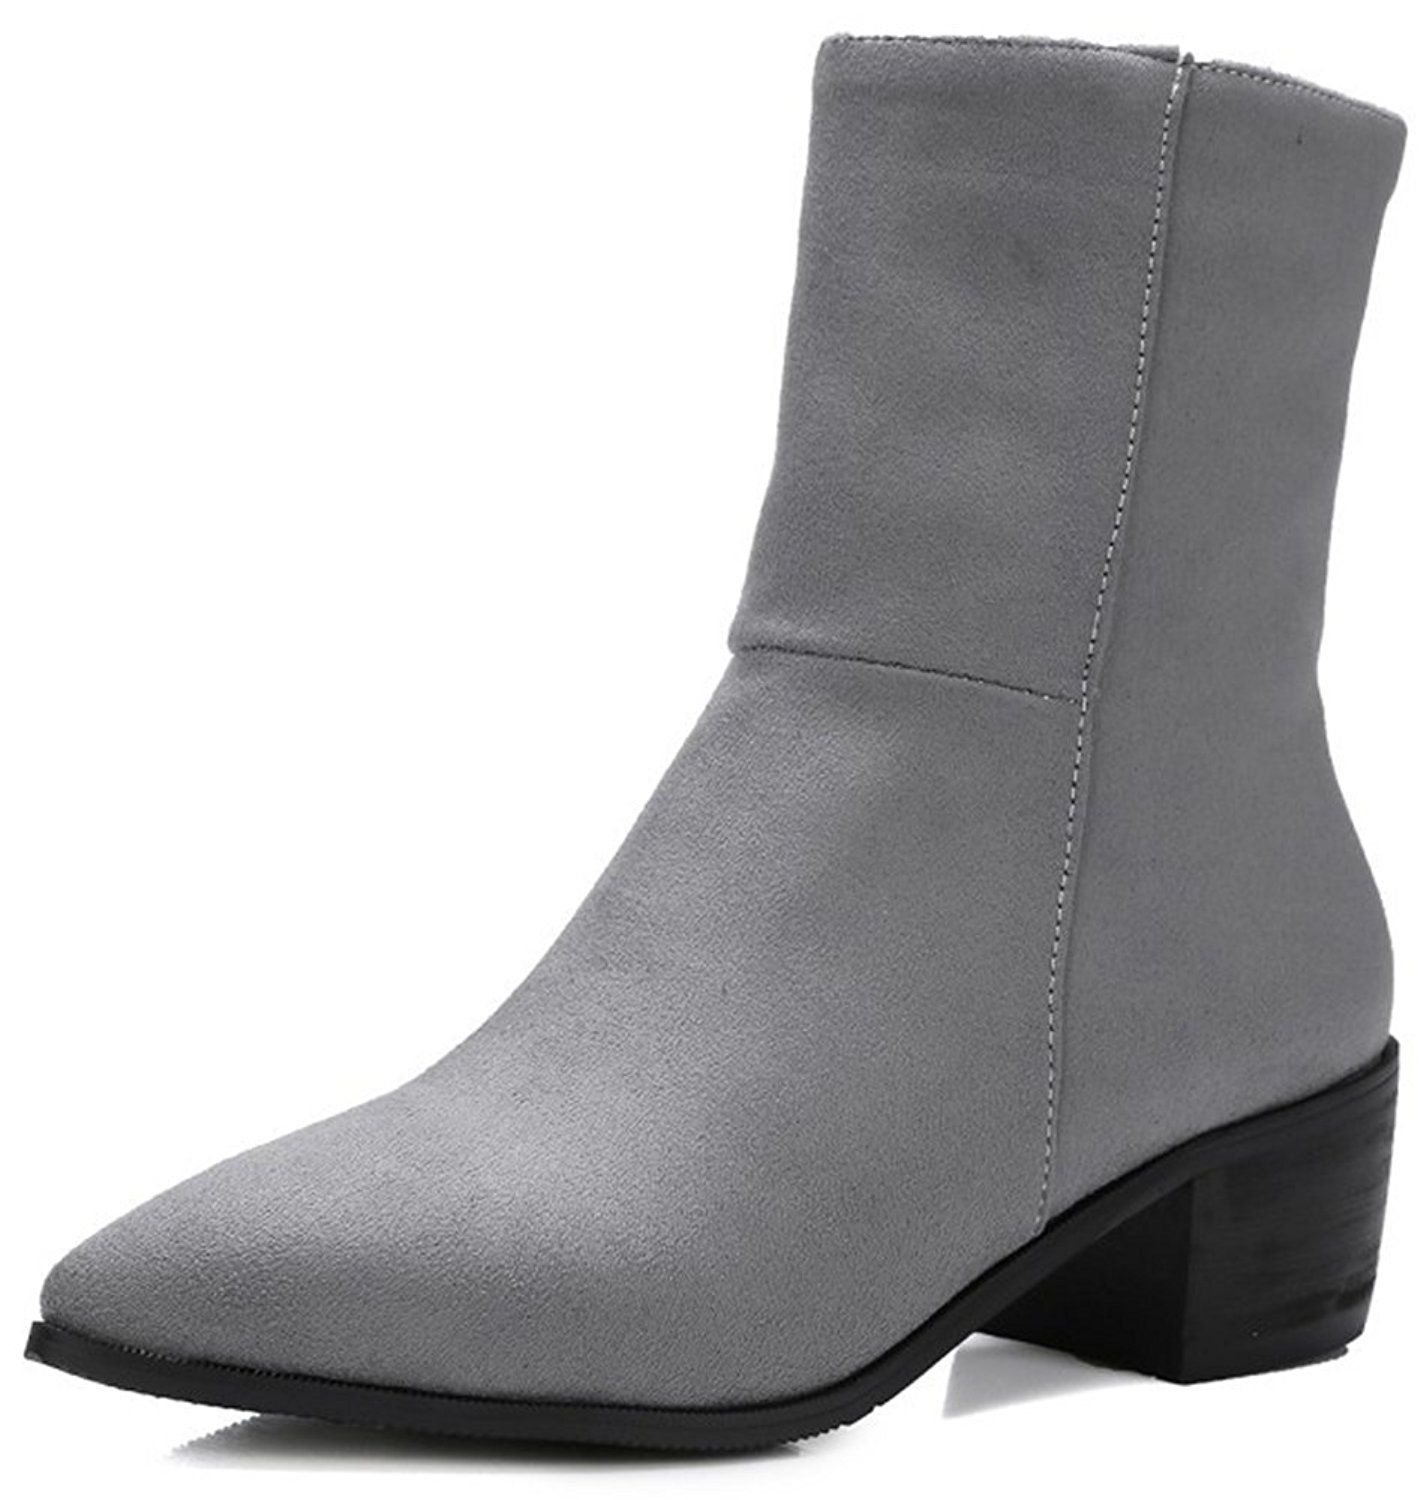 Women's Sexy Faux Suede Plain Pointed Toe Club Booties Side Zipper Block Mid Heel Ankle Boots Shoes